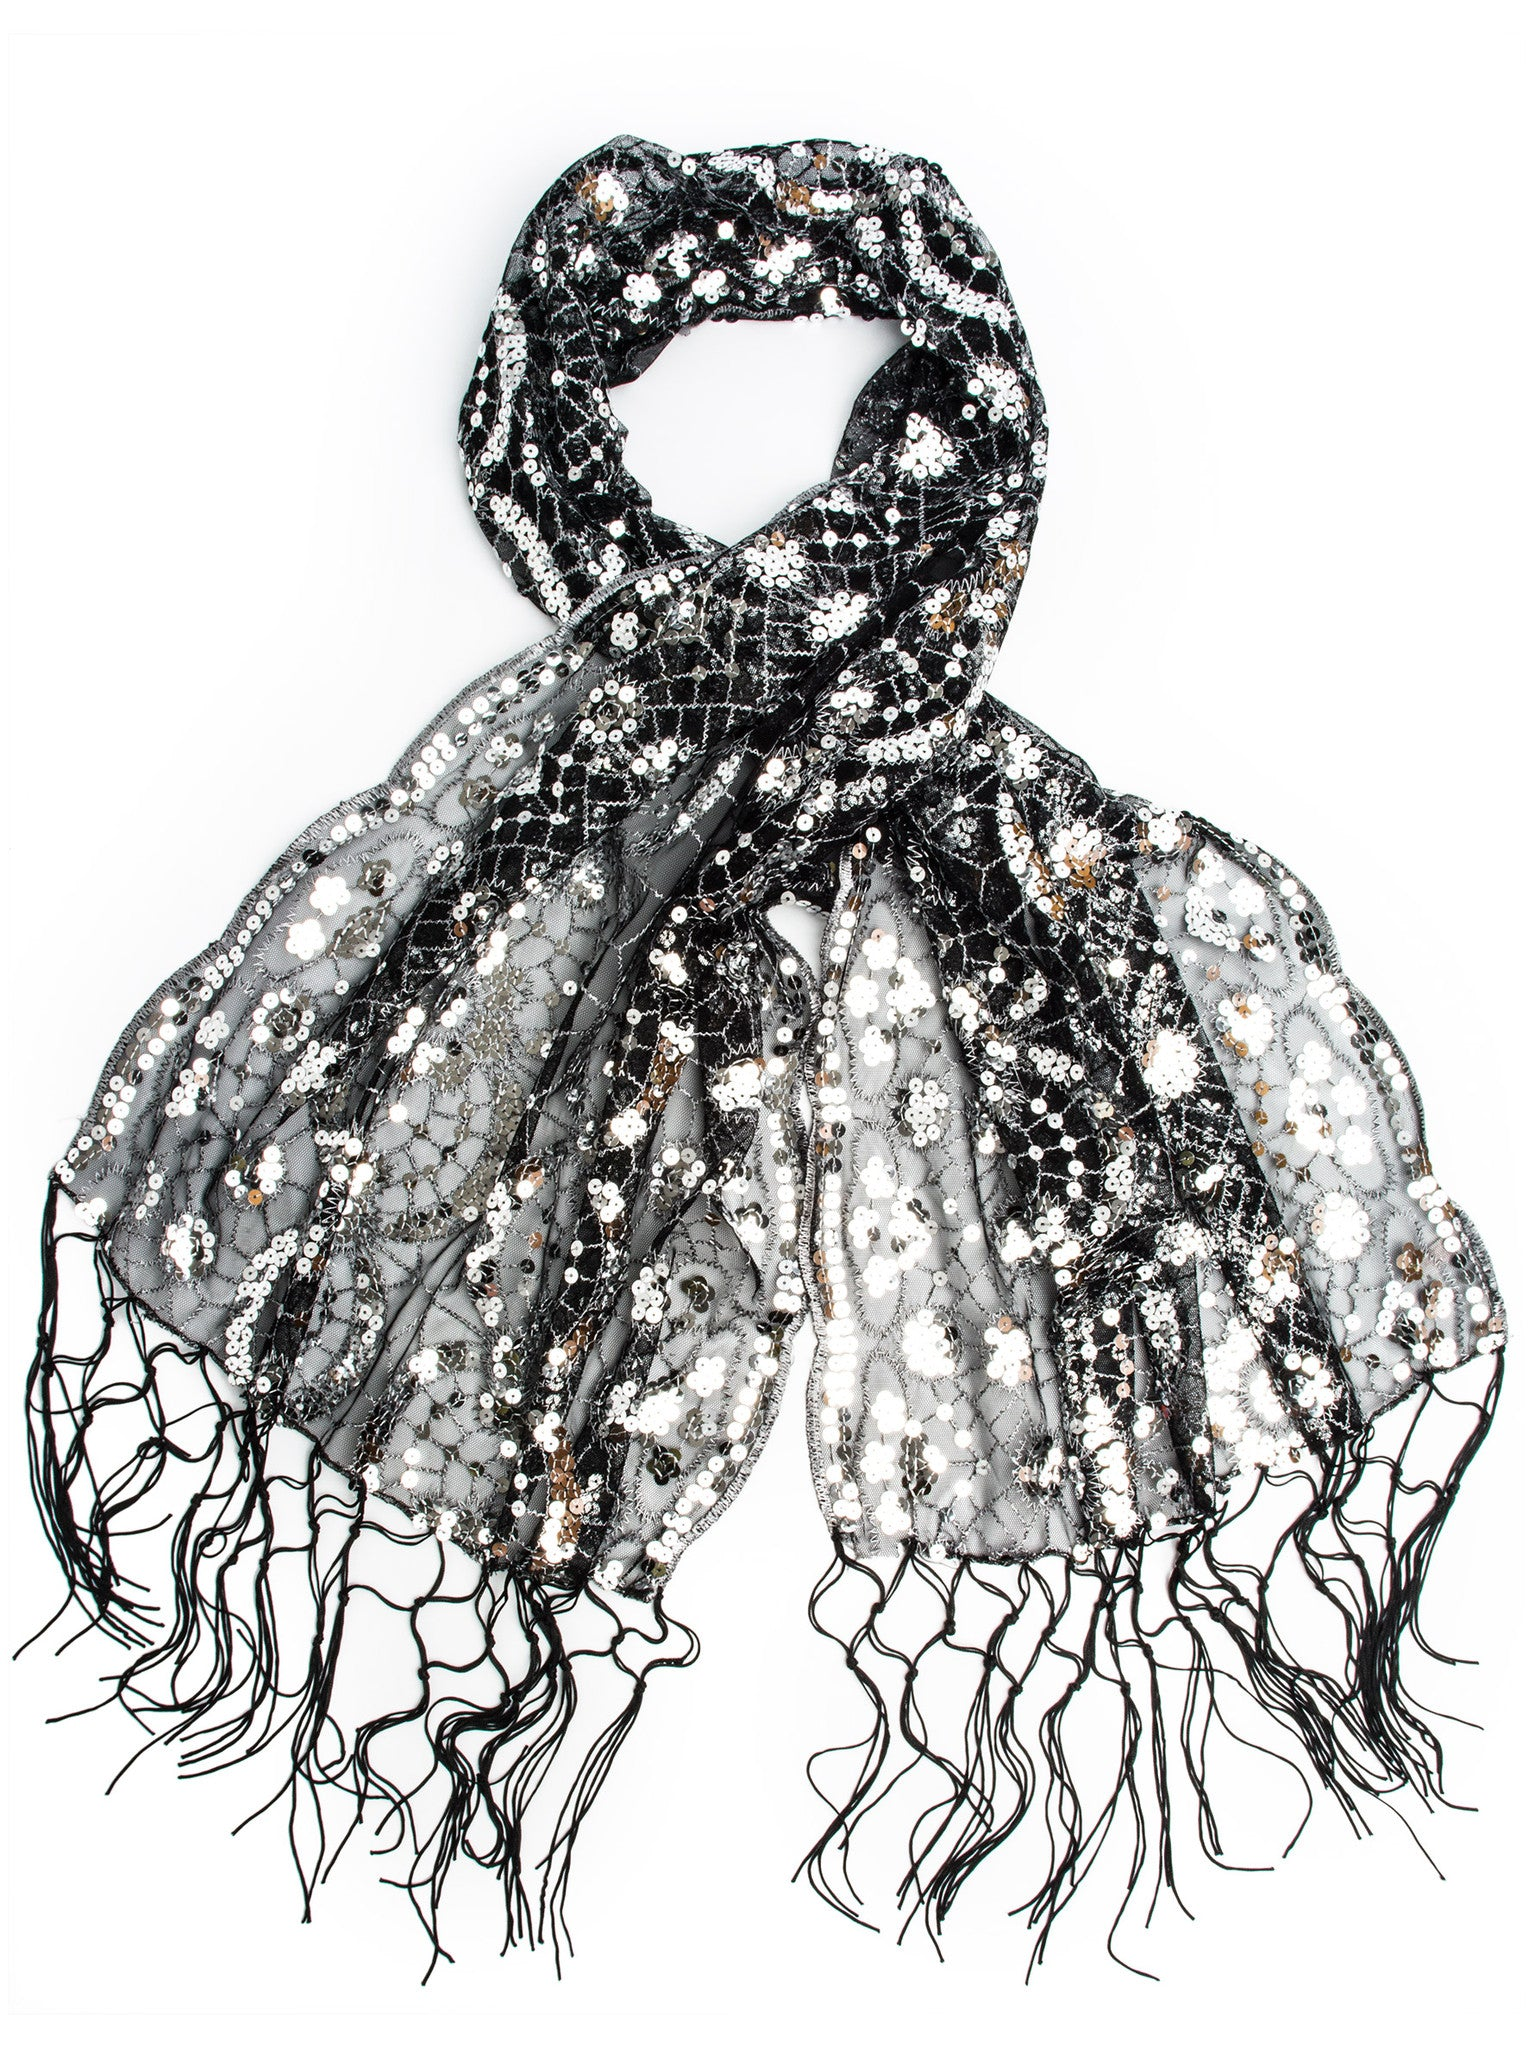 Scarves - Vera, Vintage Inspired Sequin Shawl, Evening Wrap, Embroidered Sequin Fringe Shawl or Scarf -(Black/Silver) Bohomonde  - 3